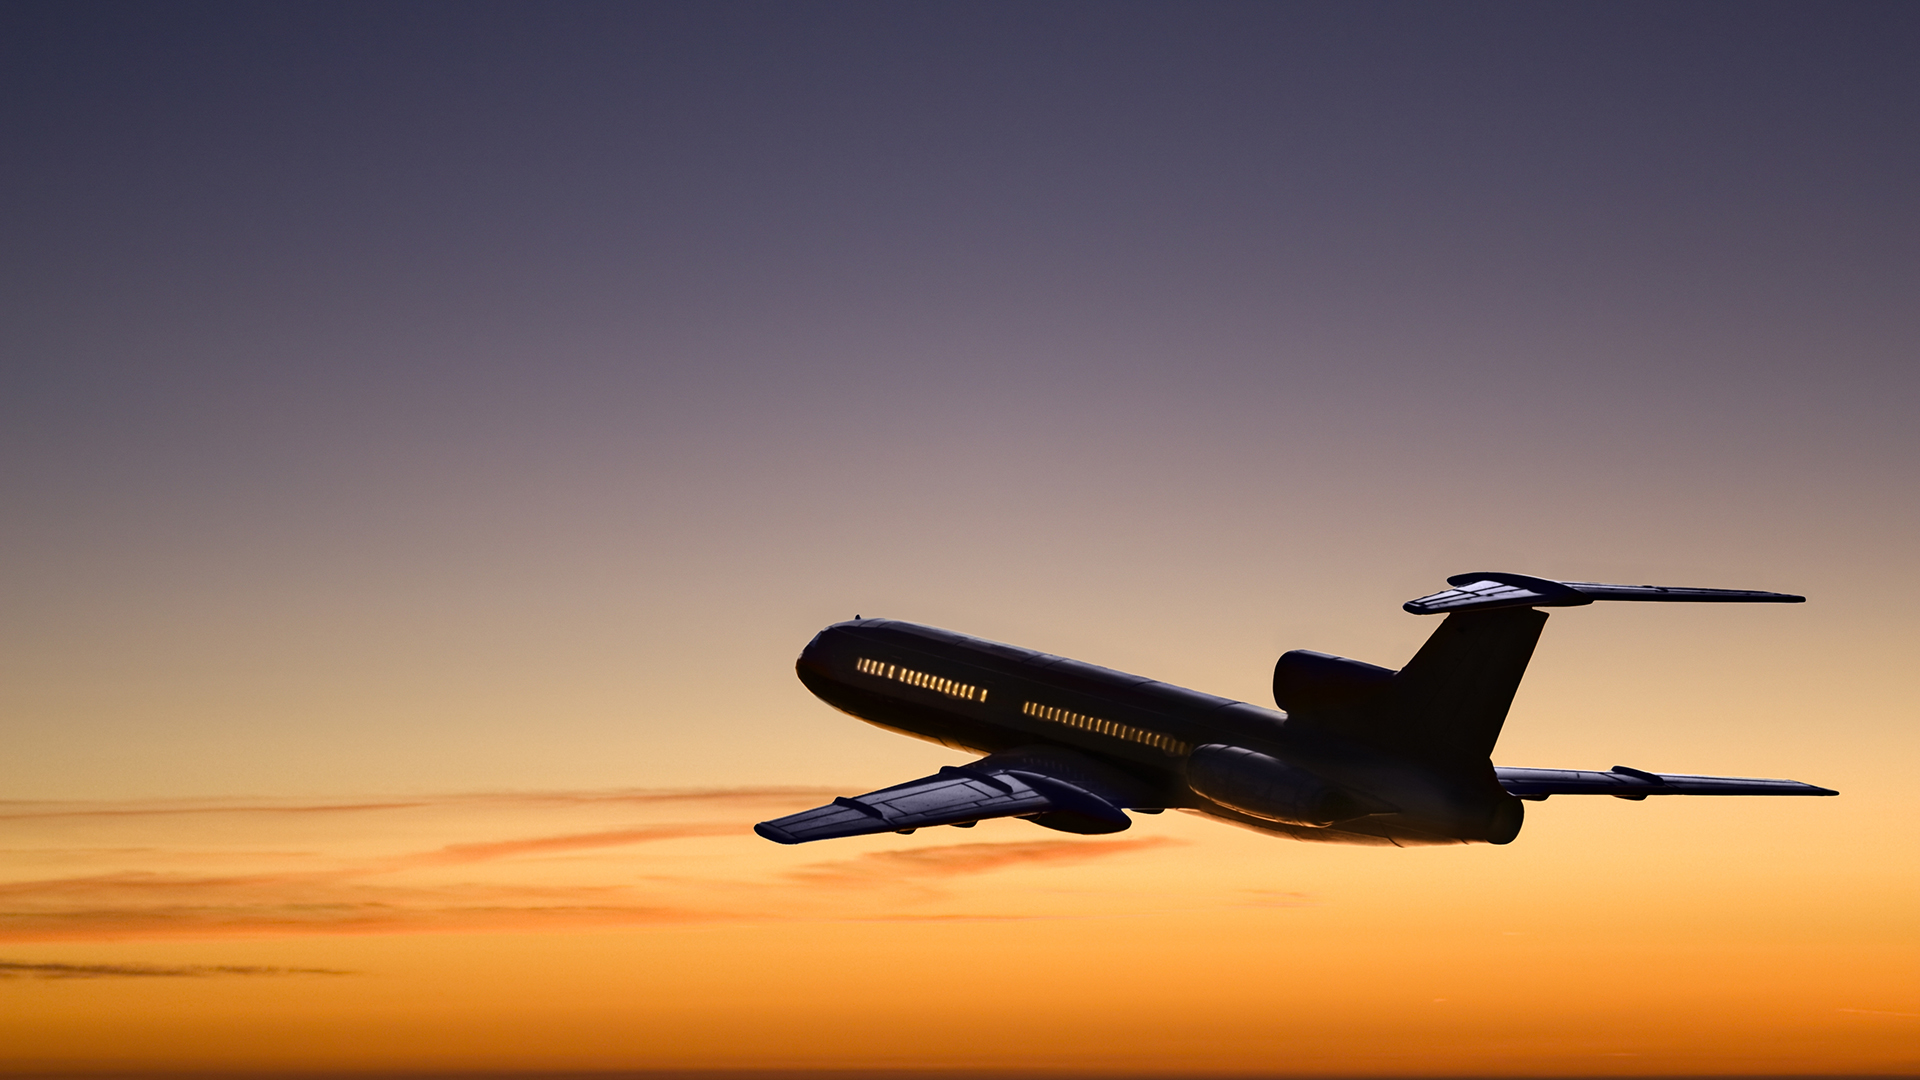 Passenger airplane flying at sunset